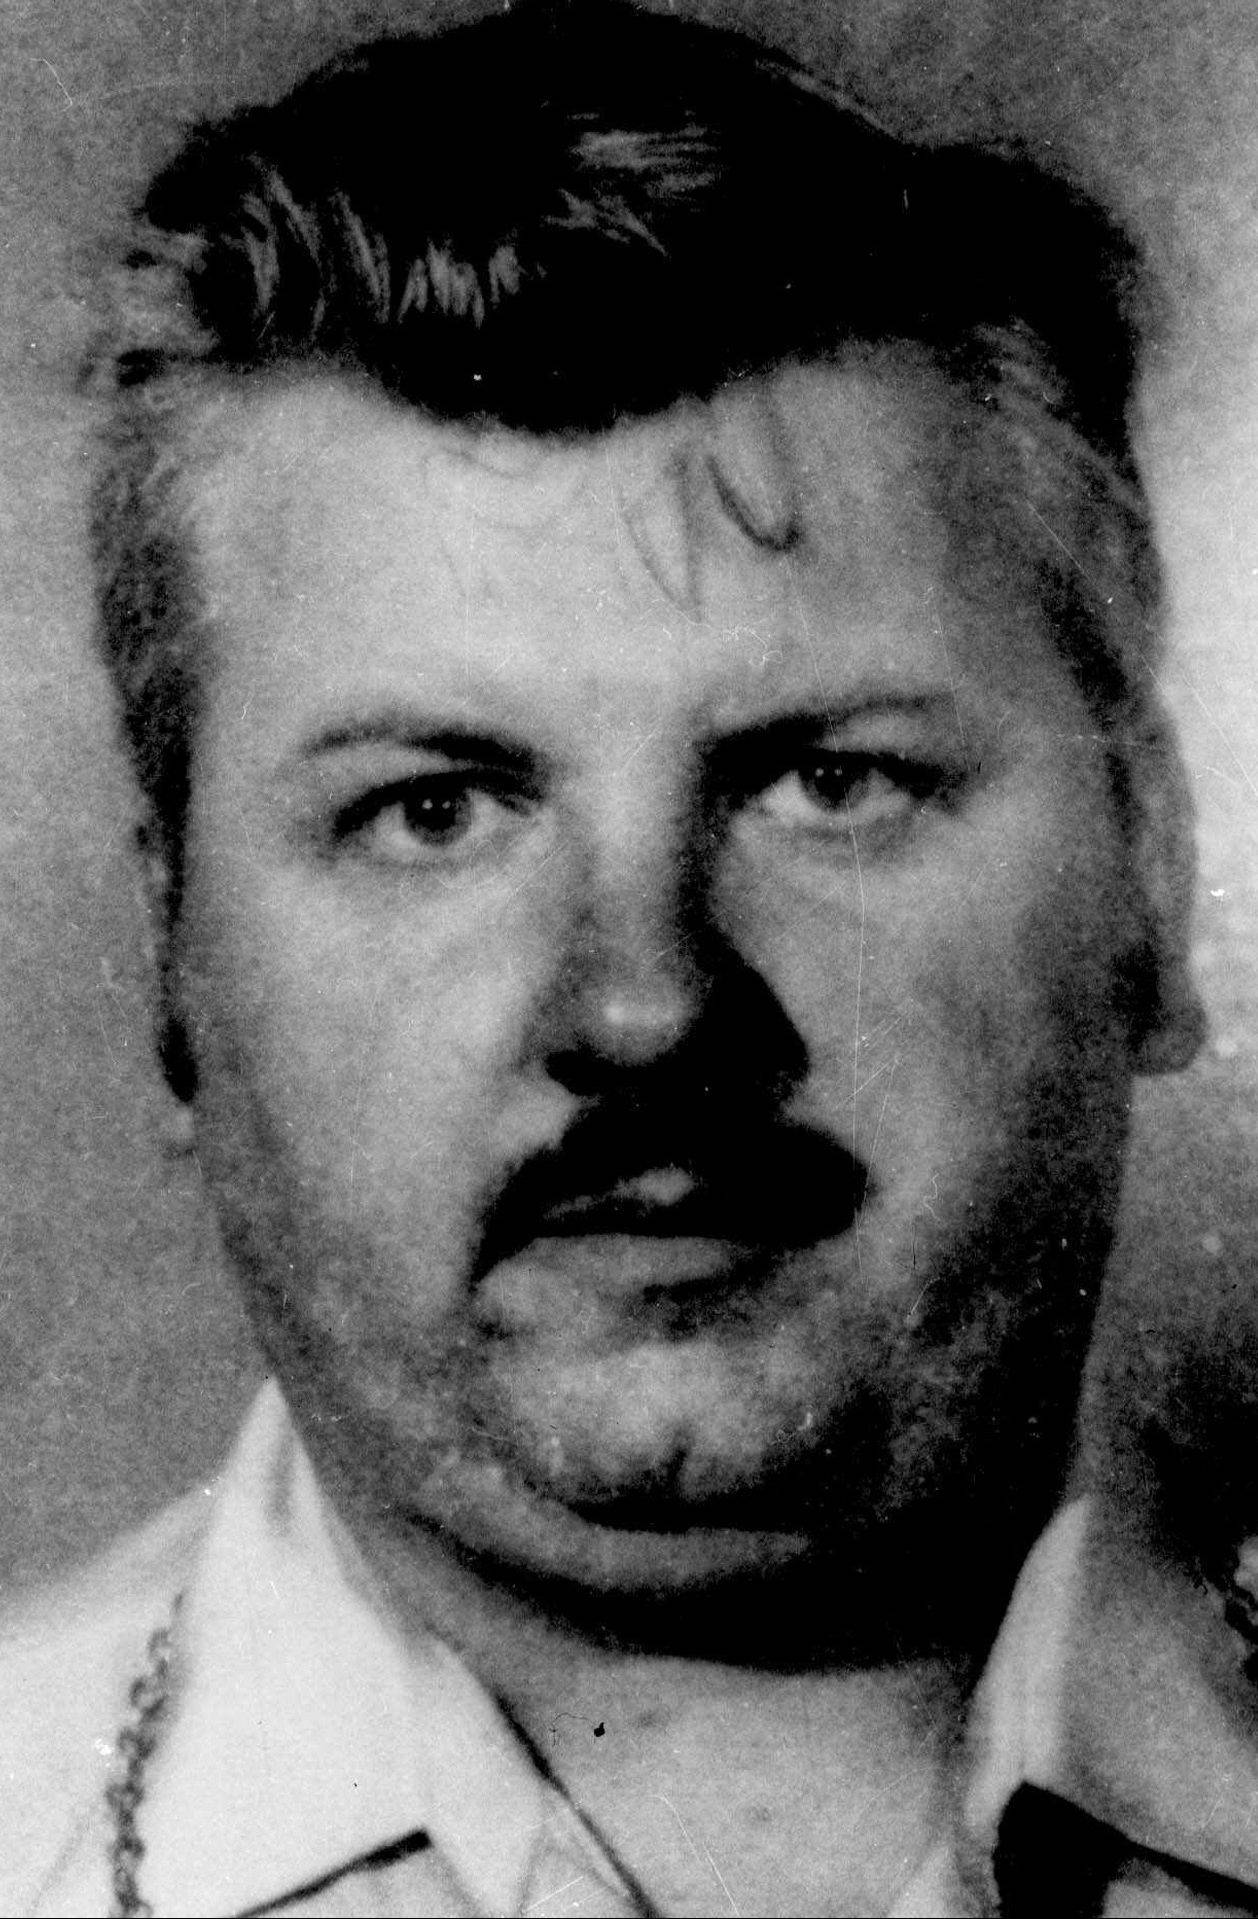 Protecting criminal psychiatrists from serial killers such as John Wayne Gacy was part of Ralph DeBartolo's job before he retired from the Chicago Police Department. DeBartolo saw Gacy himself. As chief at the Rolling Meadows courthouse, DeBartolo makes sure judges, lawyers, witnesses, spectators and defendants are protected.